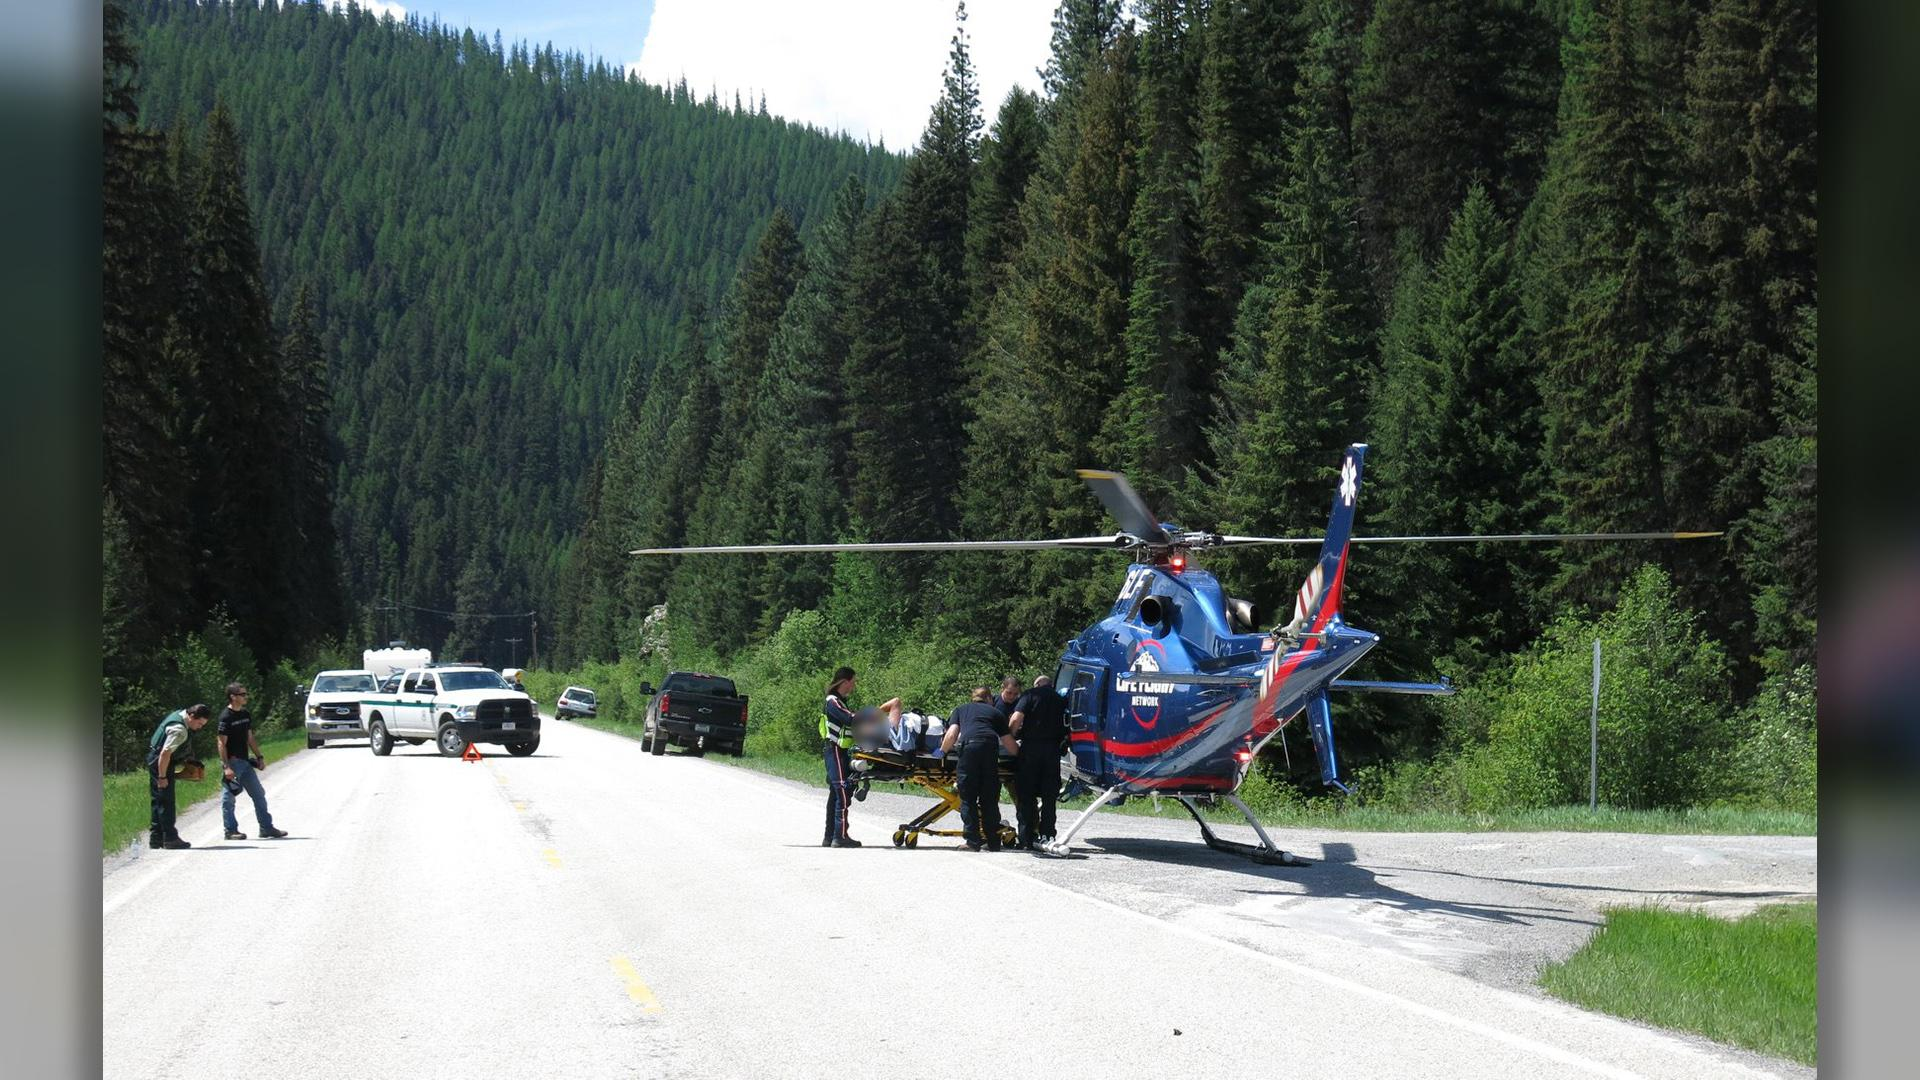 Life Flight was called to Highway 12 west of Lolo for a motorcyclist who hit a deer. (Courtesy: Terry Kay)